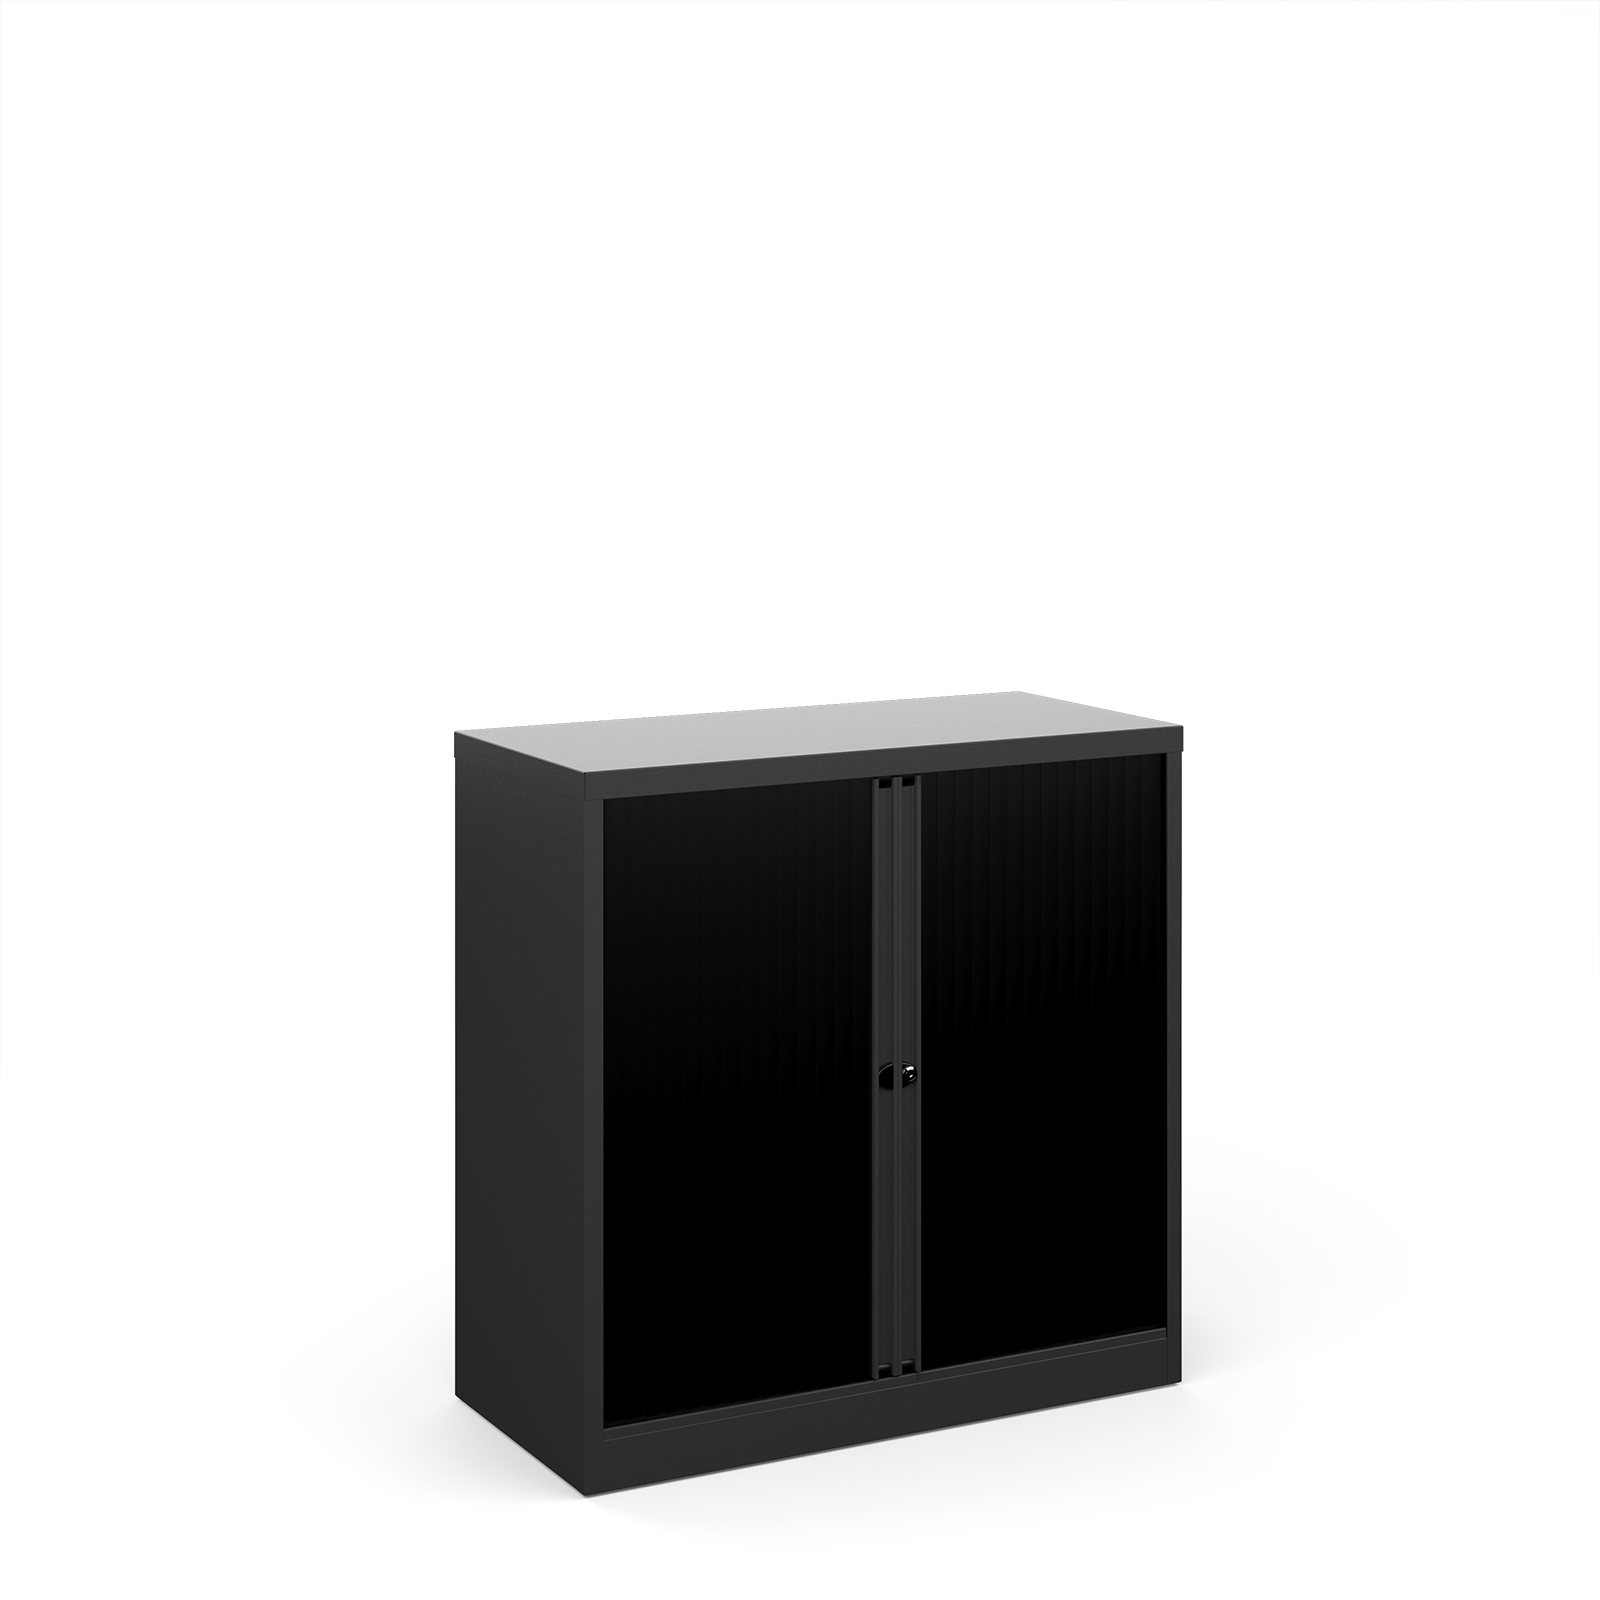 Up to 1200mm High Bisley systems storage low tambour cupboard 1000mm high - black